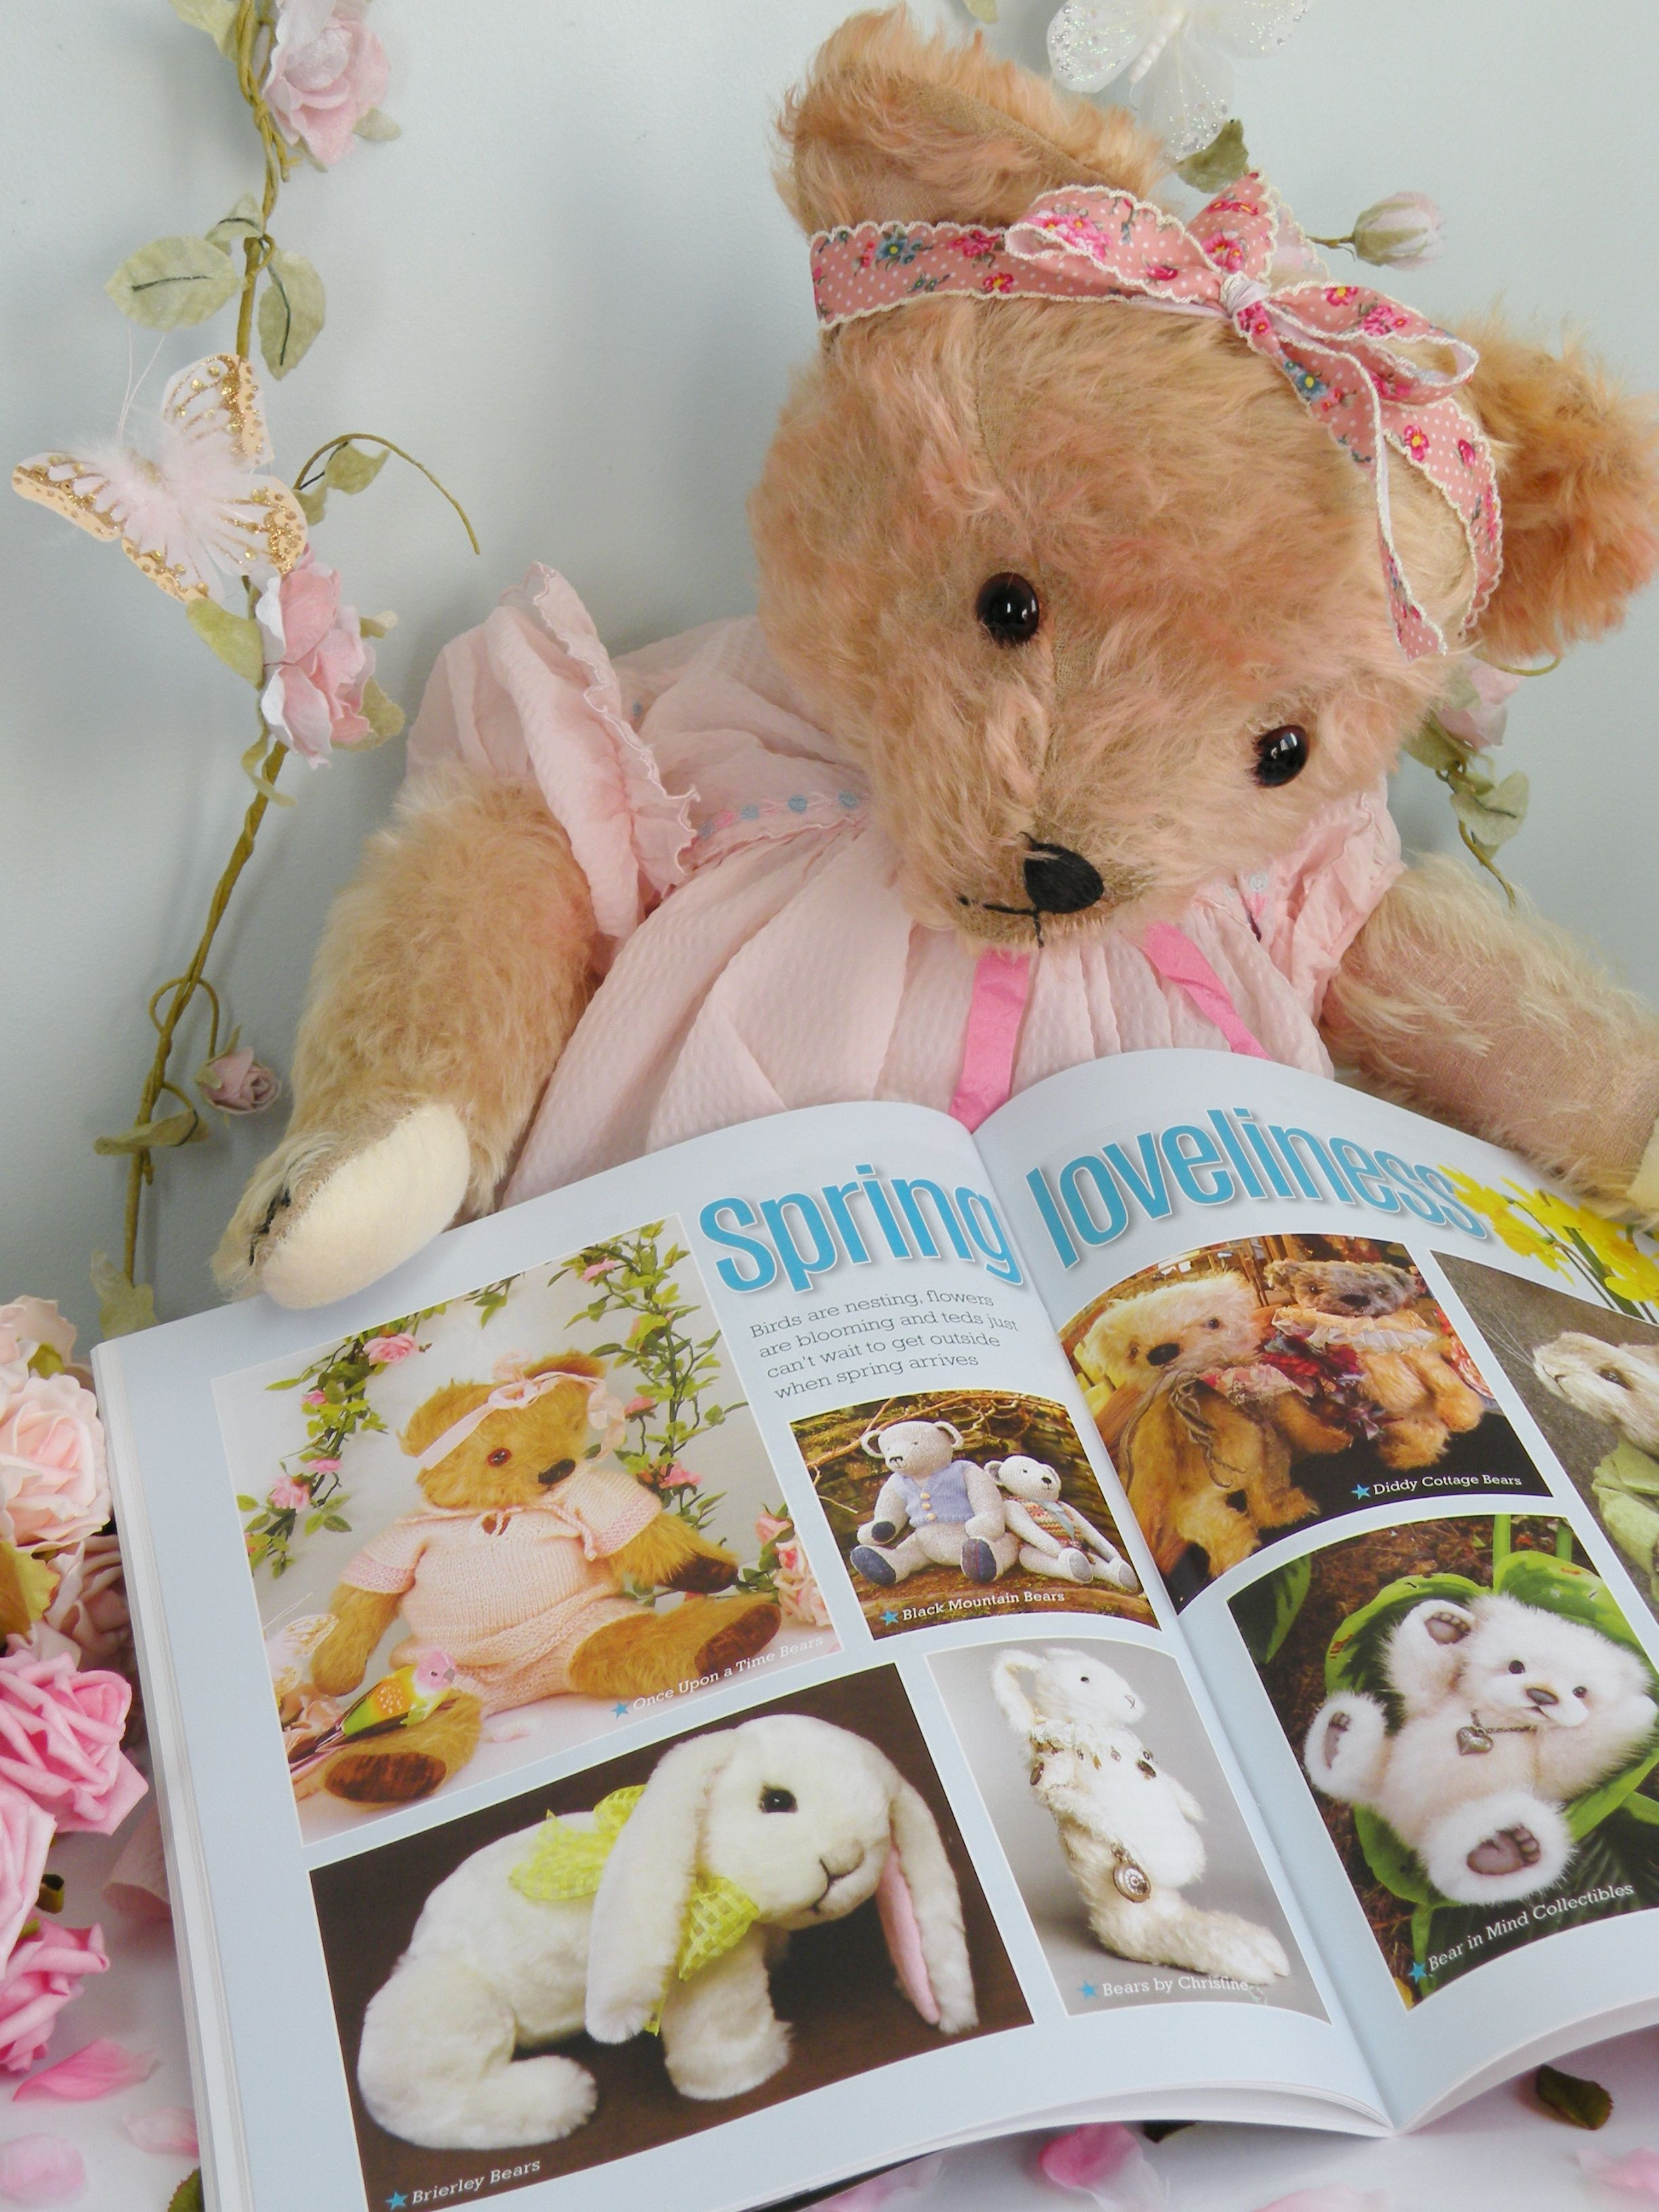 Miss Marshmellow proudly finding Peaches (a Chad Valley bear c1950 )top left photo in the Spring issue of the Teddy bear times www.onceuponatimebears.co.uk